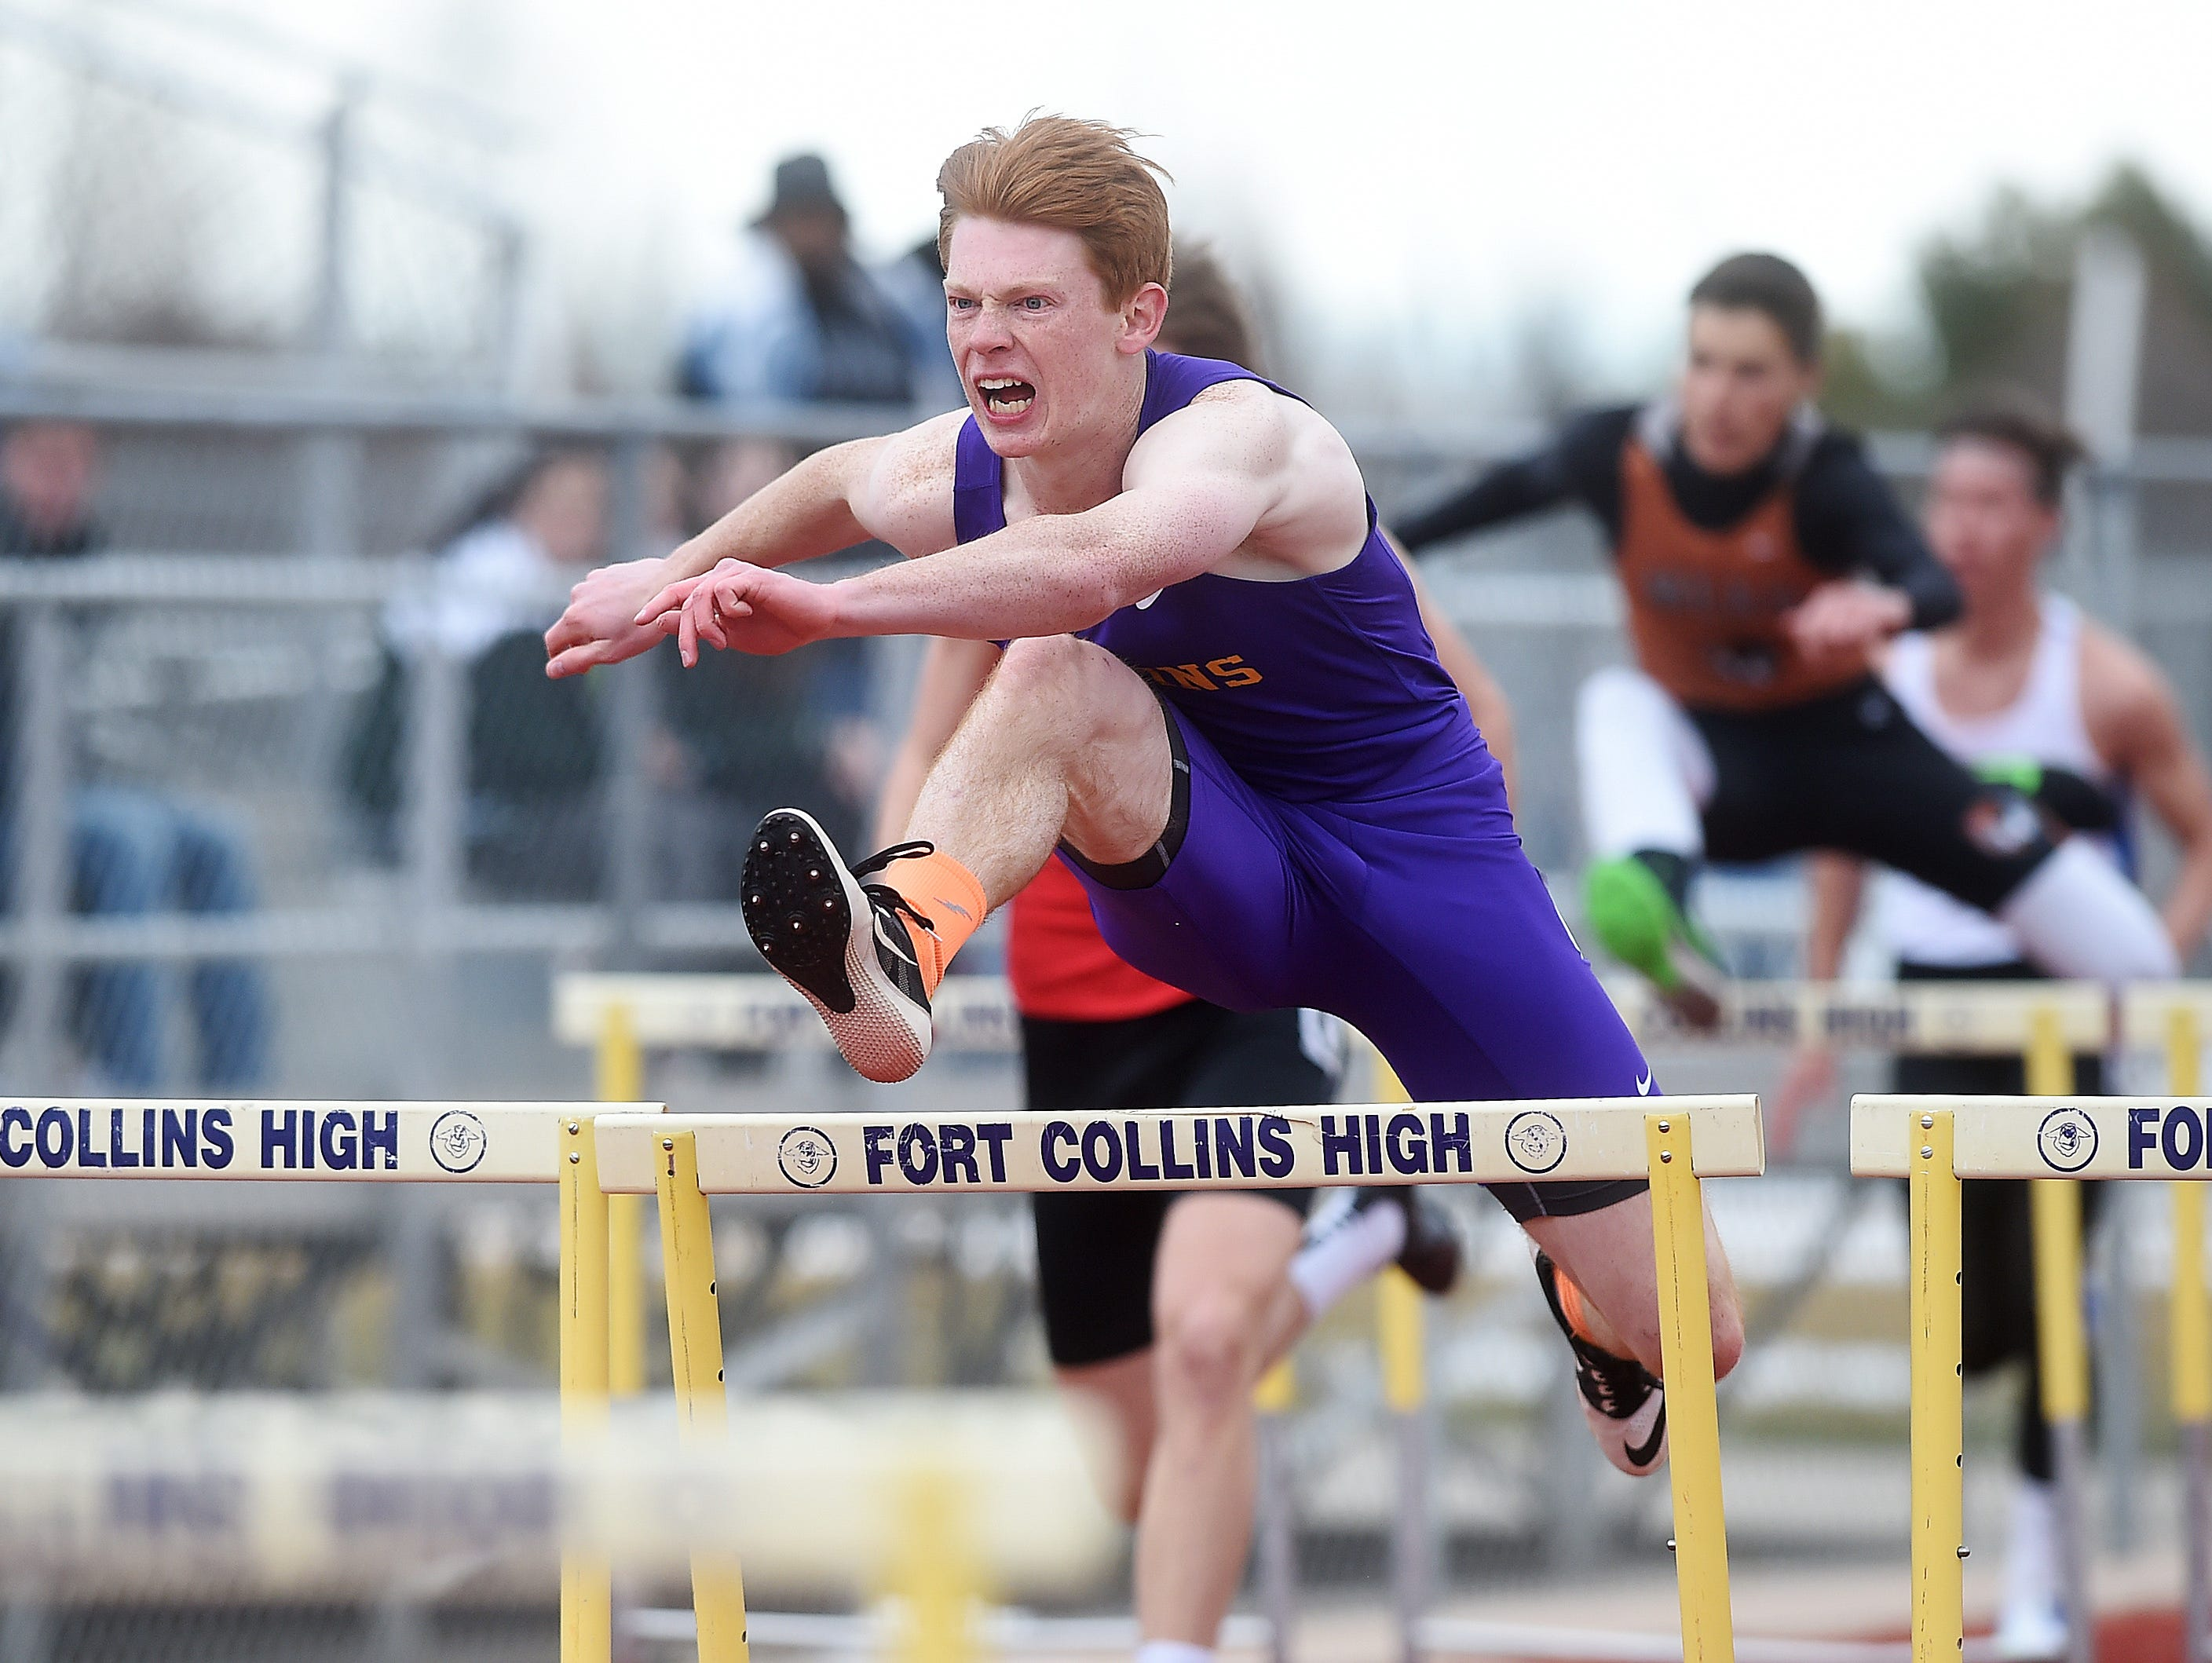 Fort Collins High School's Thomas Robillard has been named the Coloradoan's Male Athlete of the Week.